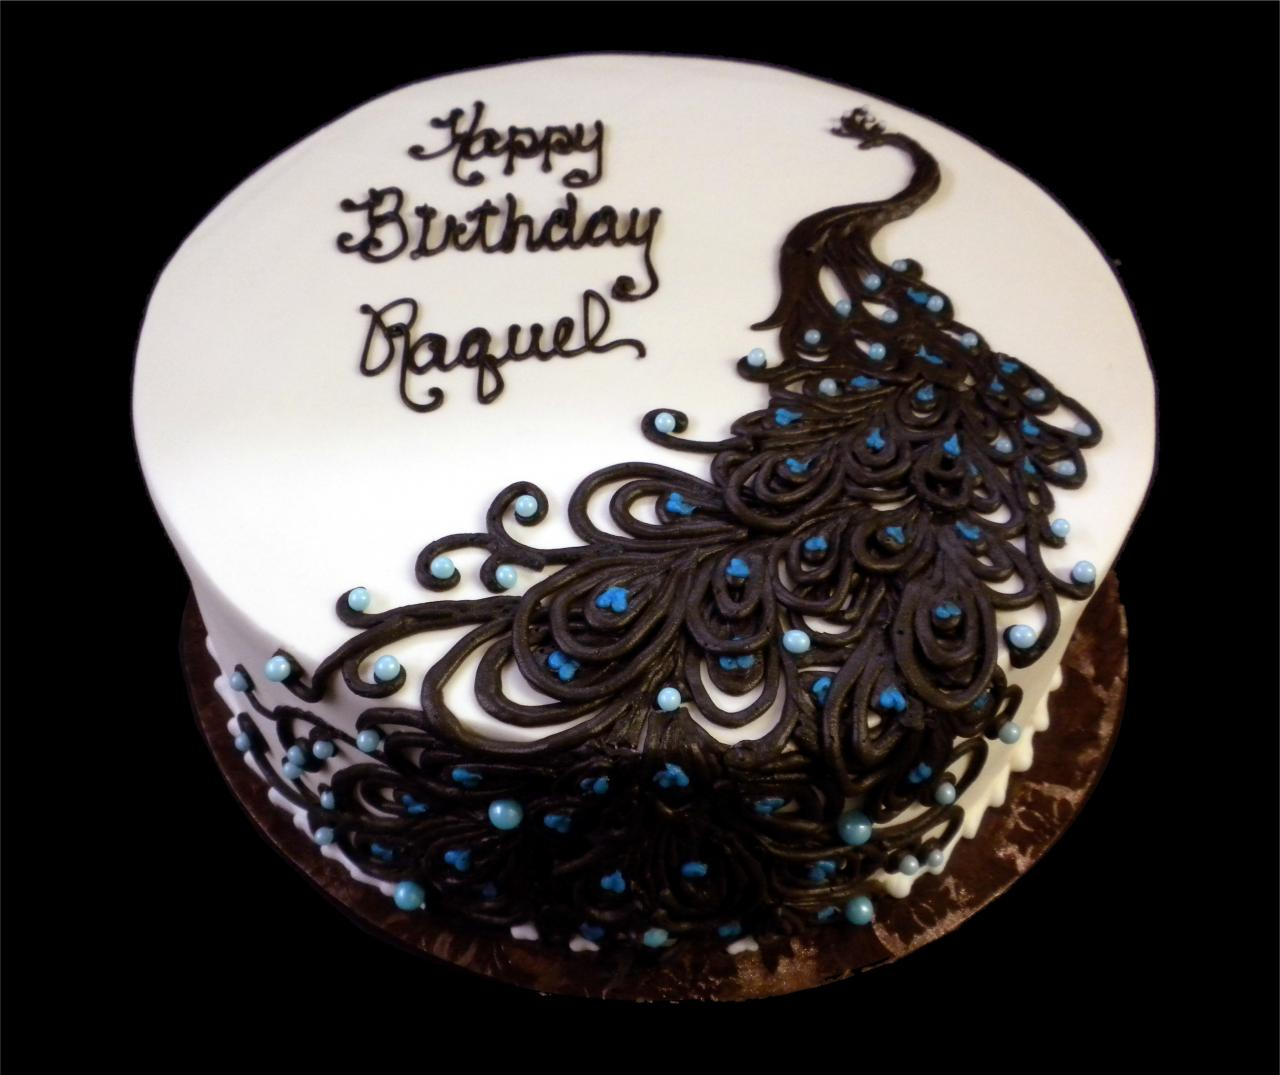 Peacock Cakes And Peacock Theme Everything on Pinterest